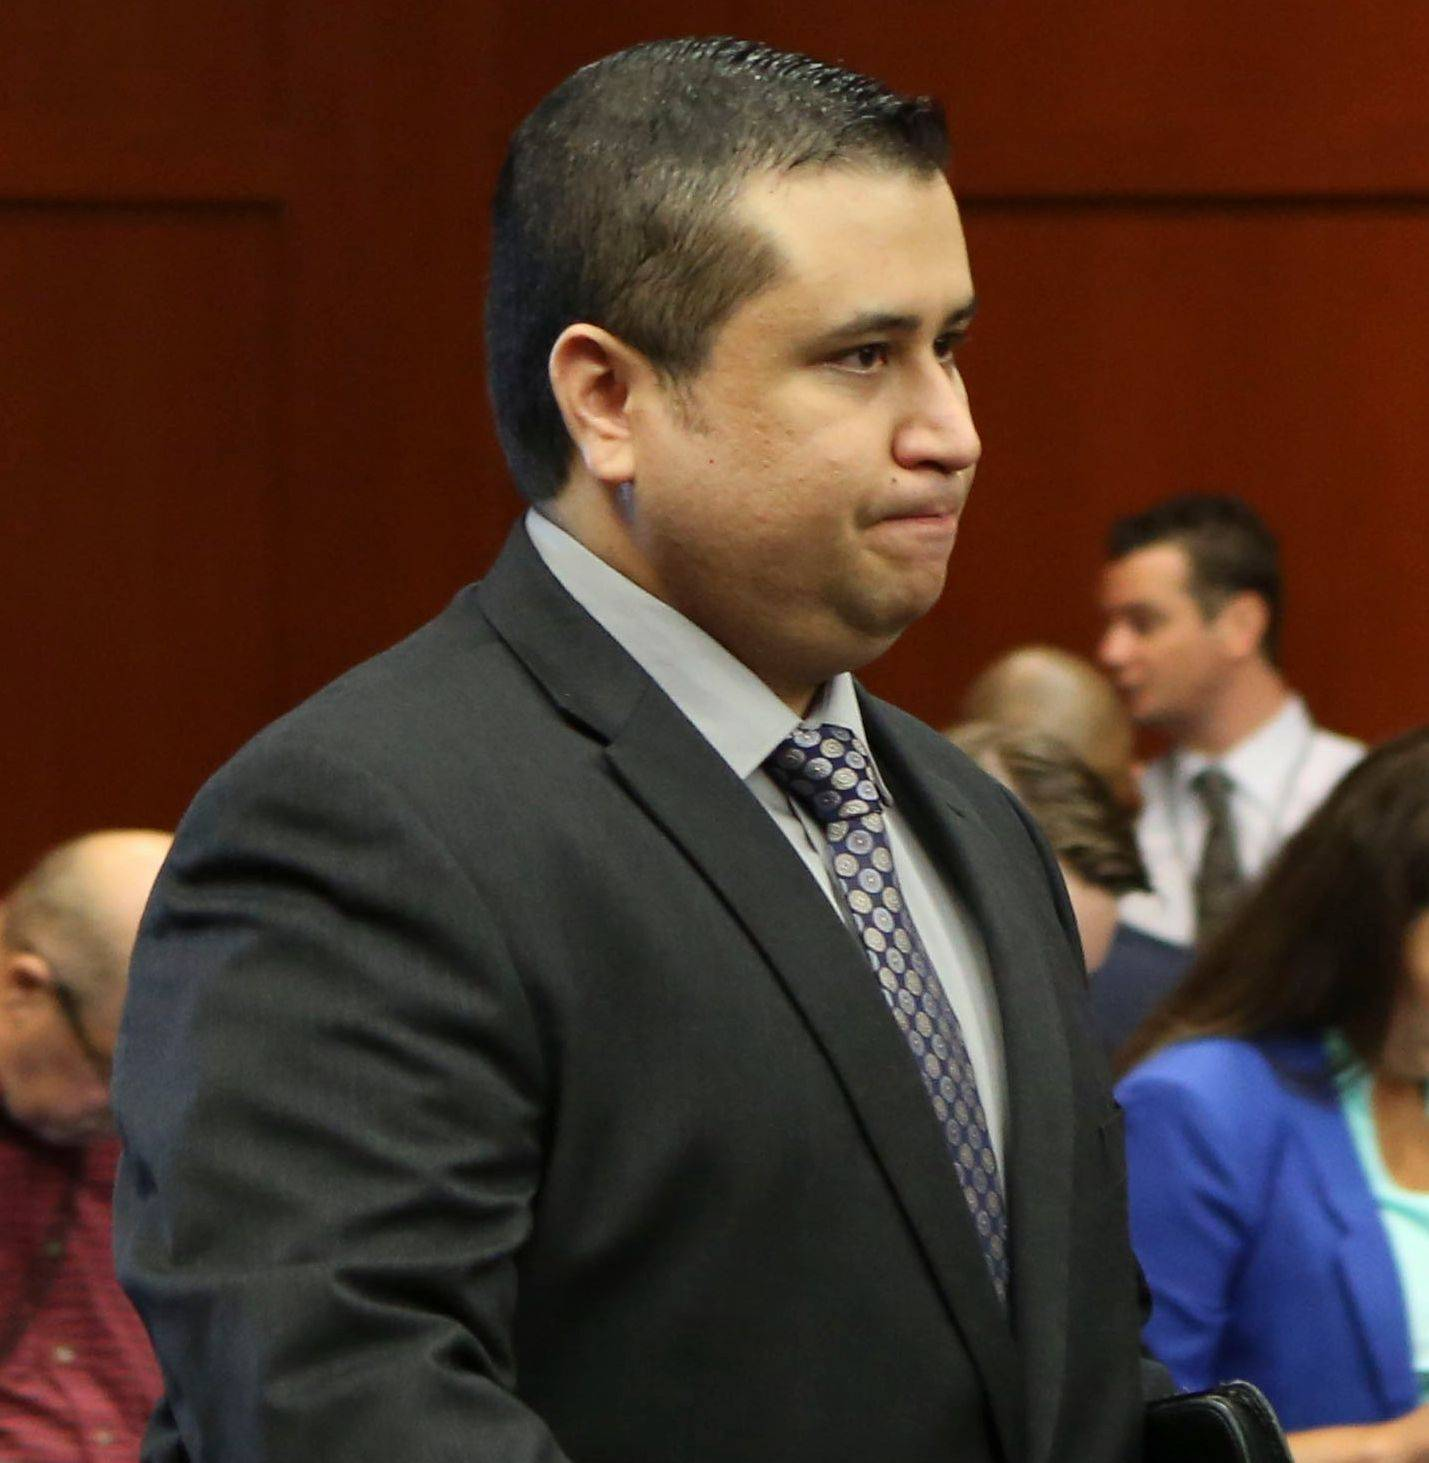 George Zimmerman enters the courtroom for his trial in Seminole circuit court in Sanford, Fla. Wednesday. He has been charged with second-degree murder in the 2012 shooting death of Trayvon Martin.